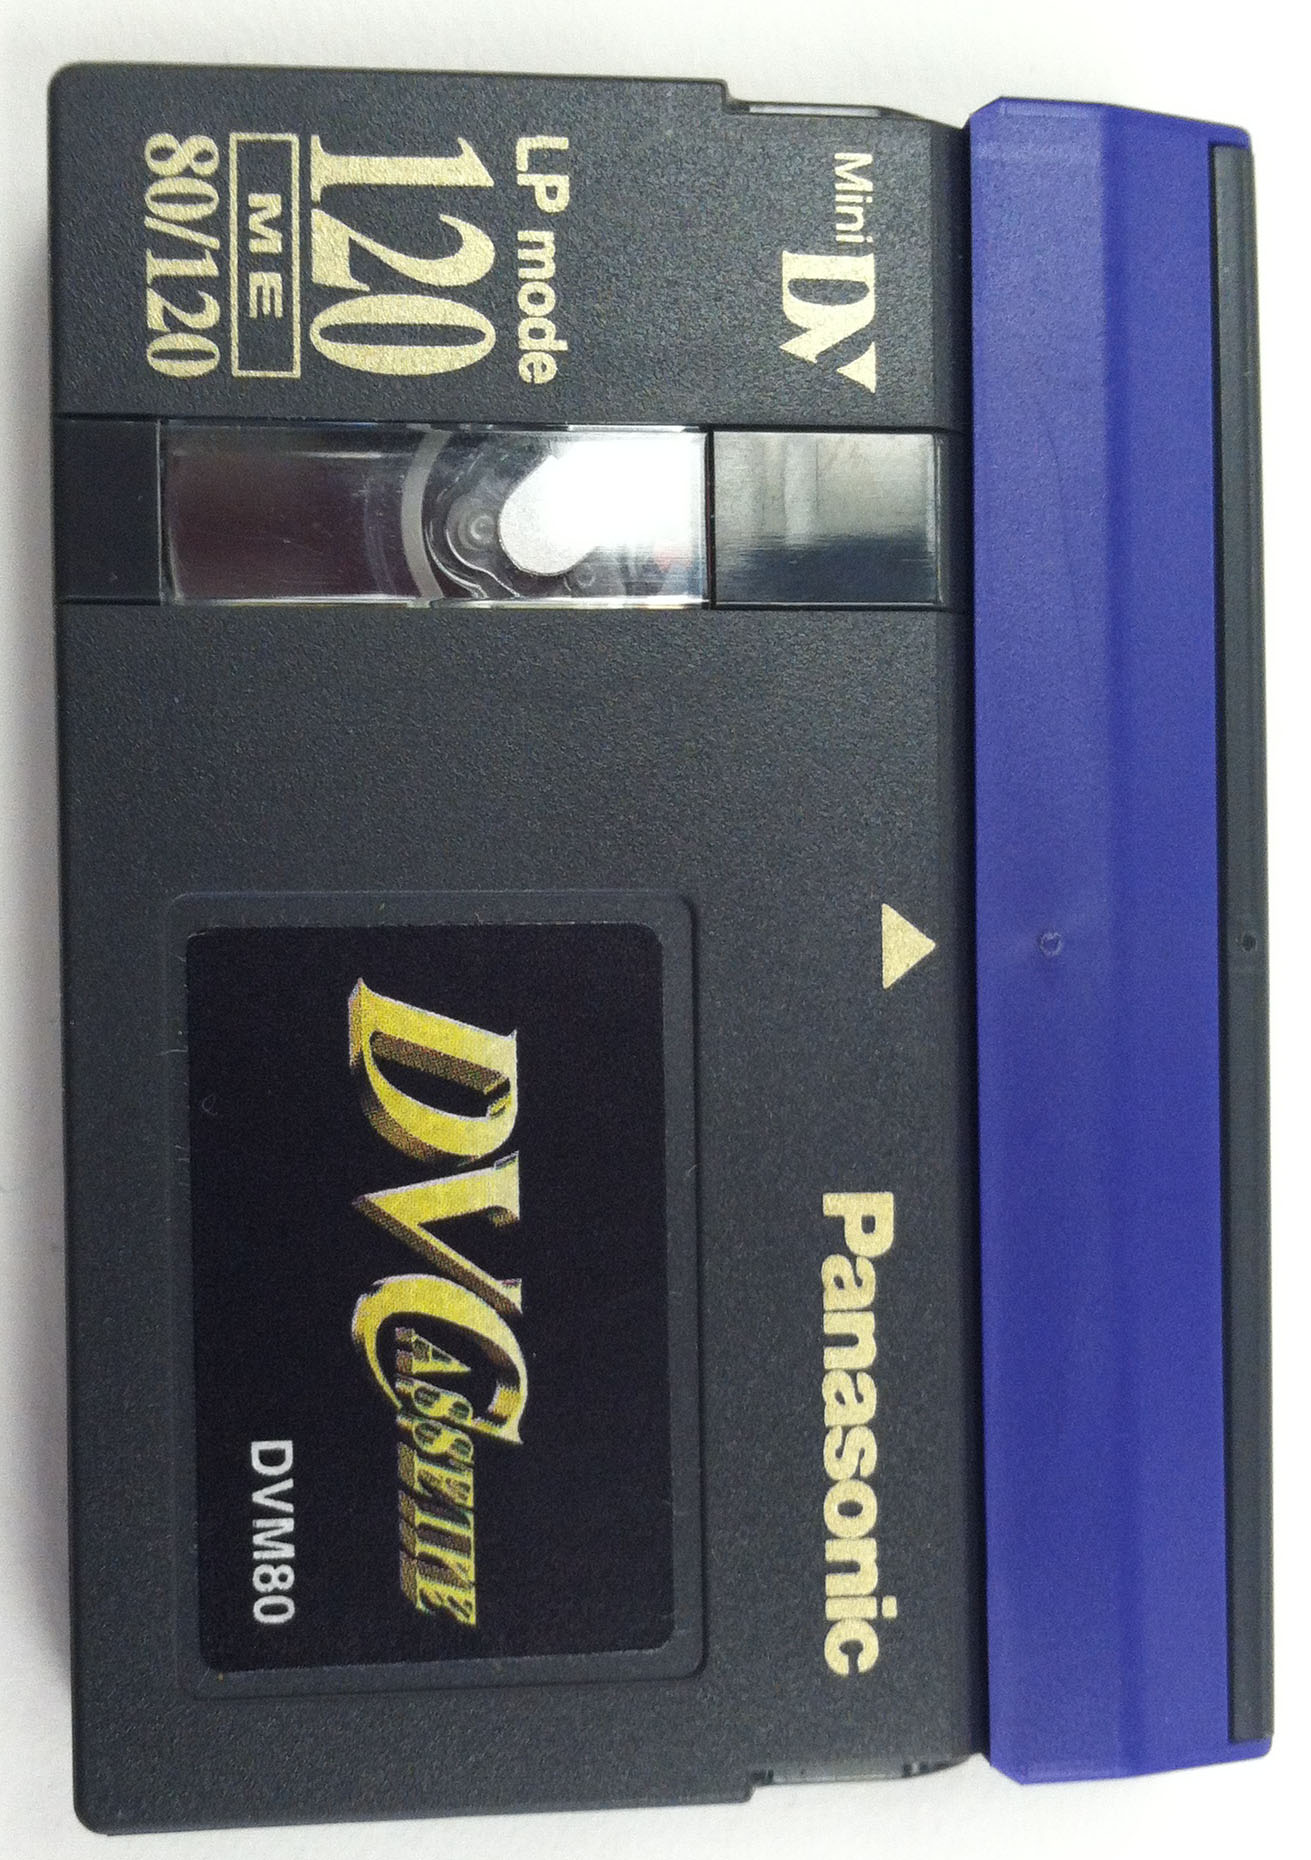 Mini Digital Videotape